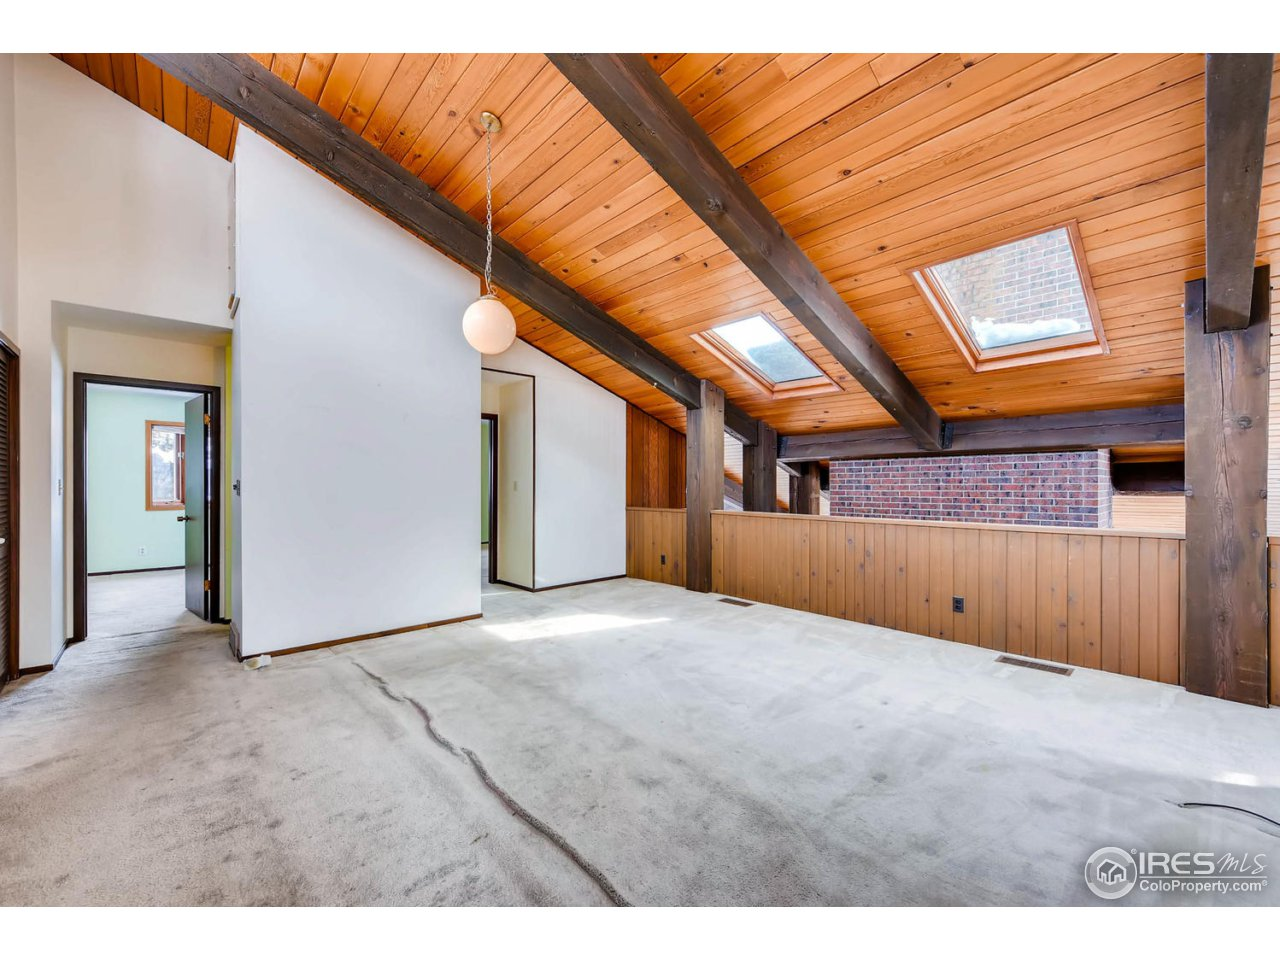 Upstairs Loft with Beams and Vaults